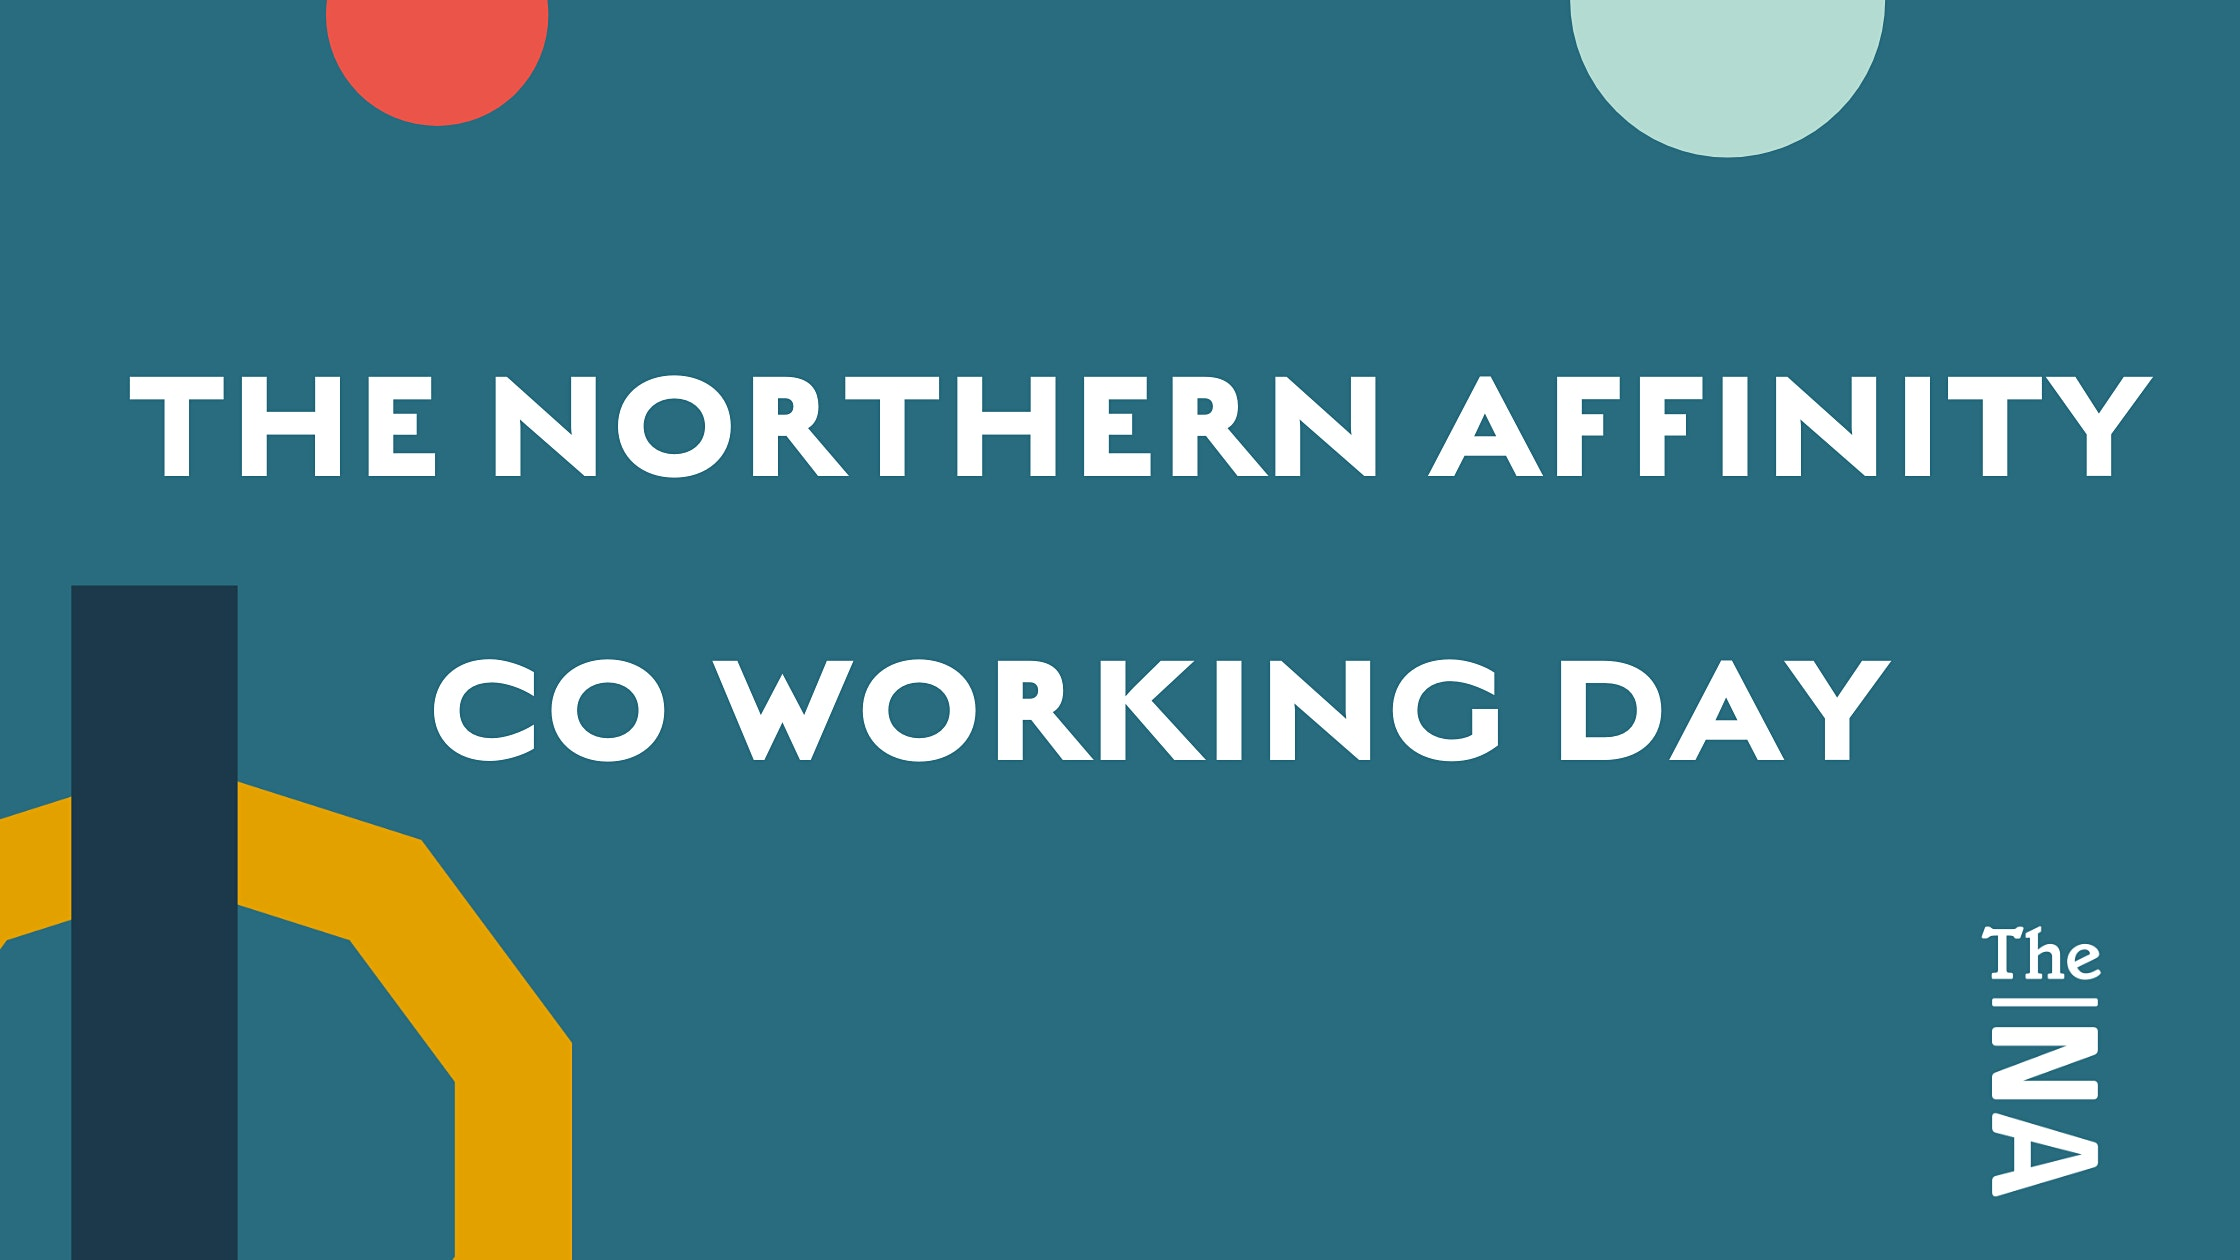 The Northern Affinity Co Working Day @ The DMC Barnsley